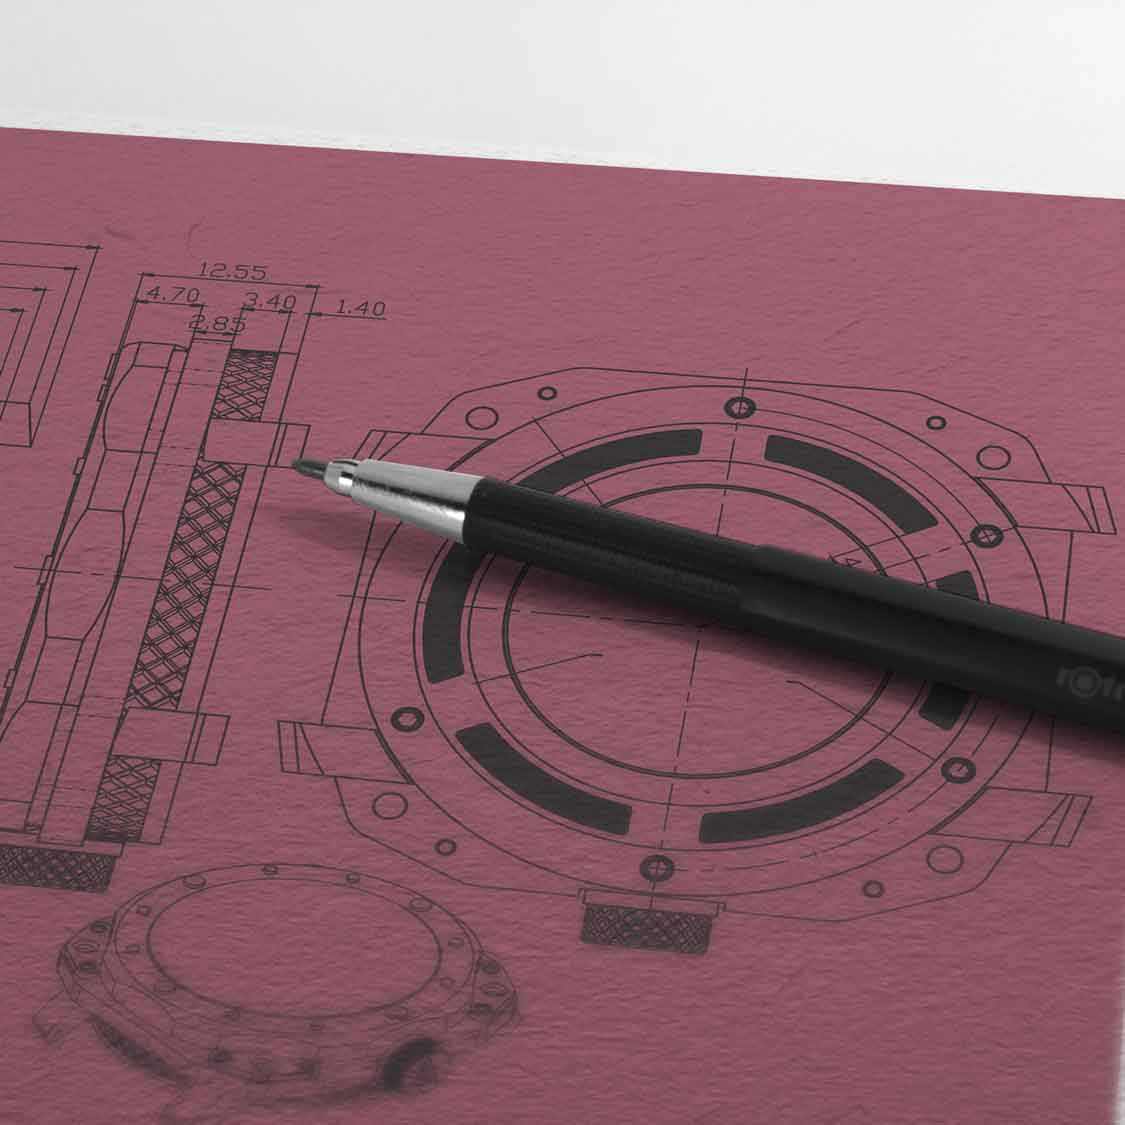 watch designers essex author studios technical drawings red